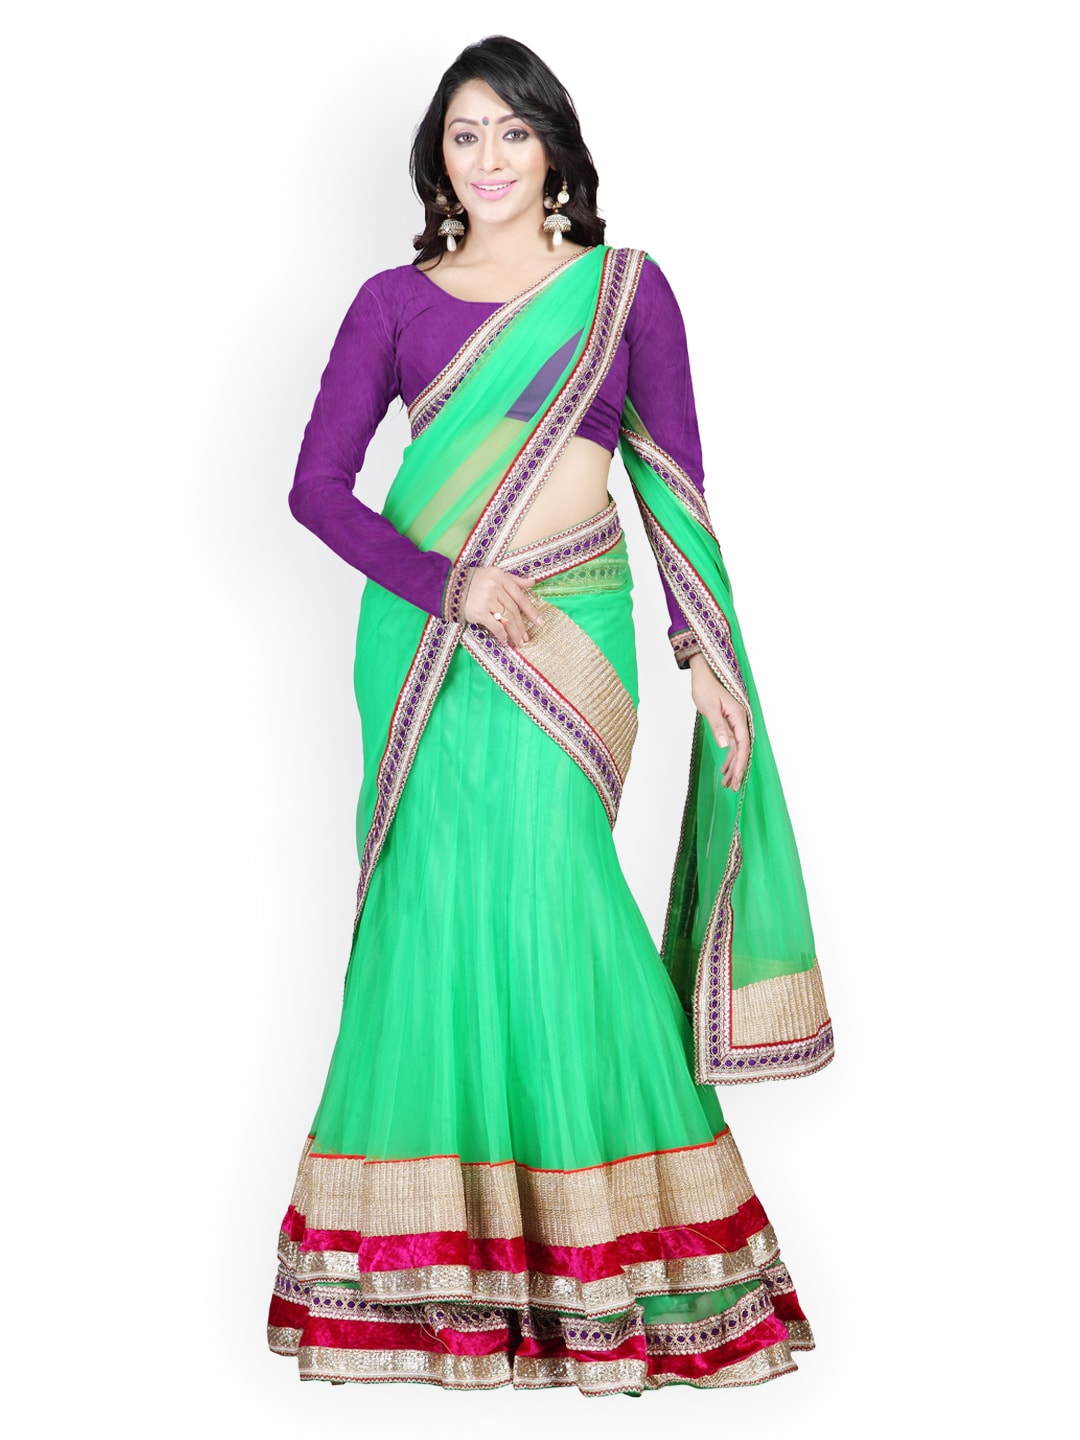 Florence Green Embroidered Georgette Semi-Stitched Lehenga Choli Material with Dupatta